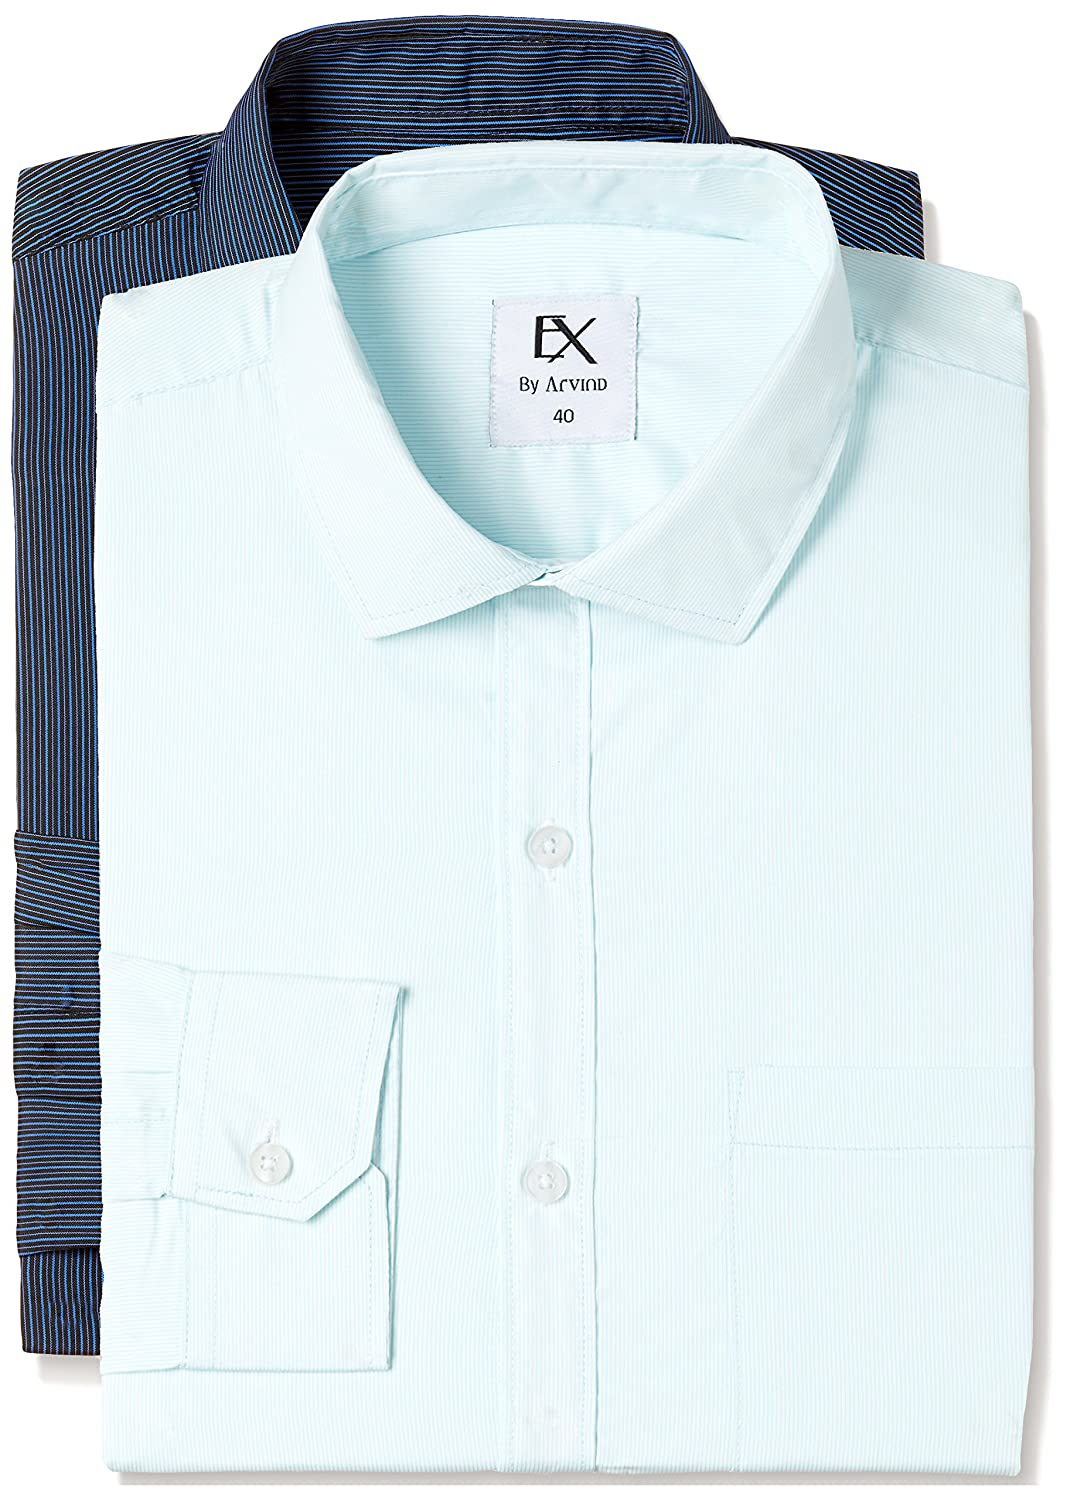 Excalibur Men's Shirt (Pack of 2) from Rs.367 @Amazon